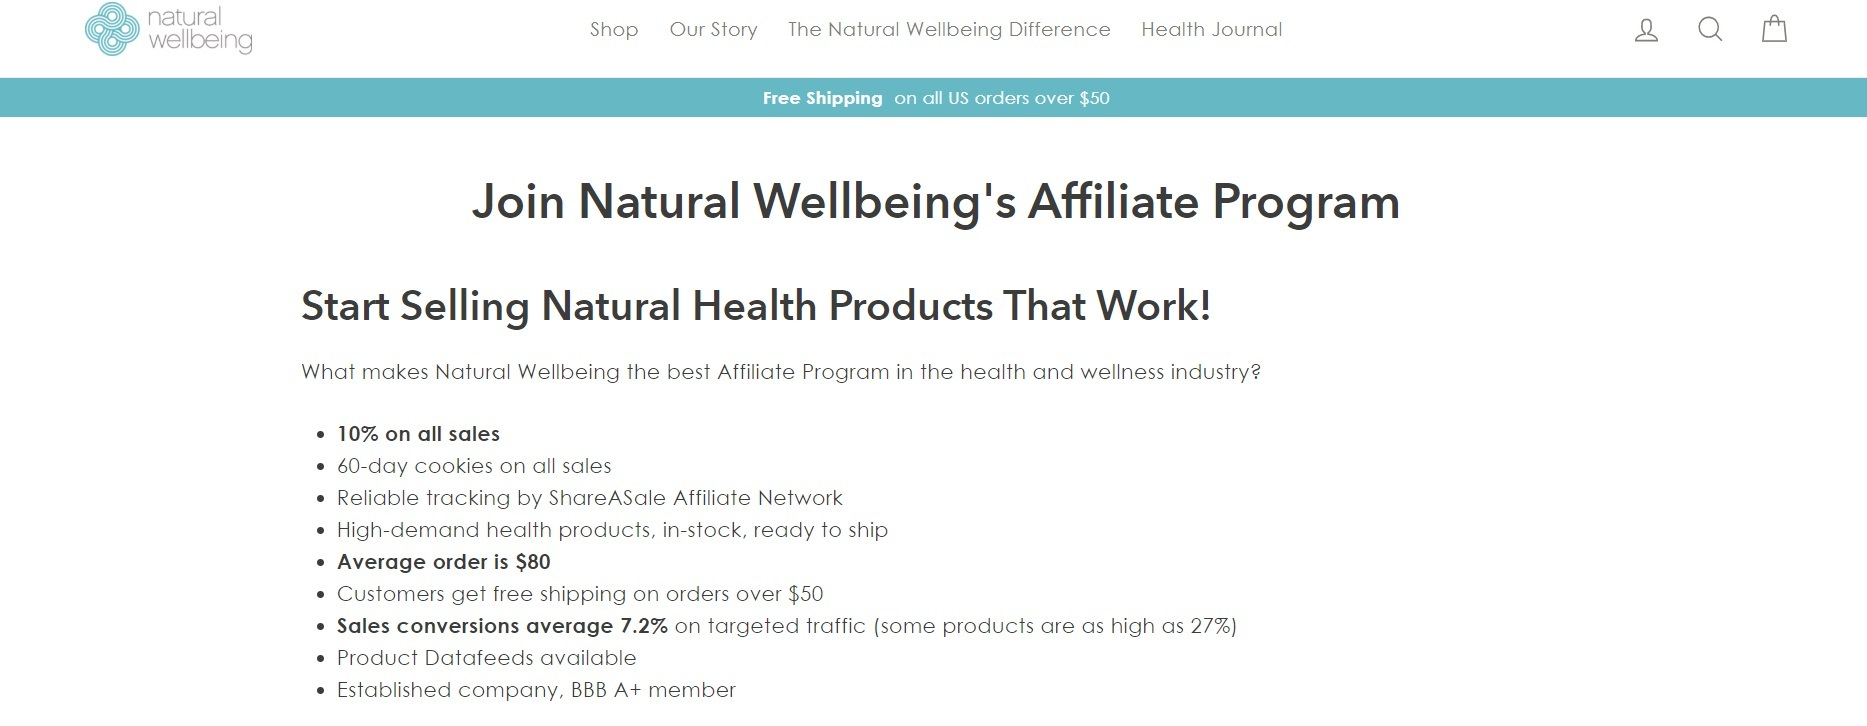 Natural Well Being Affiliate Program